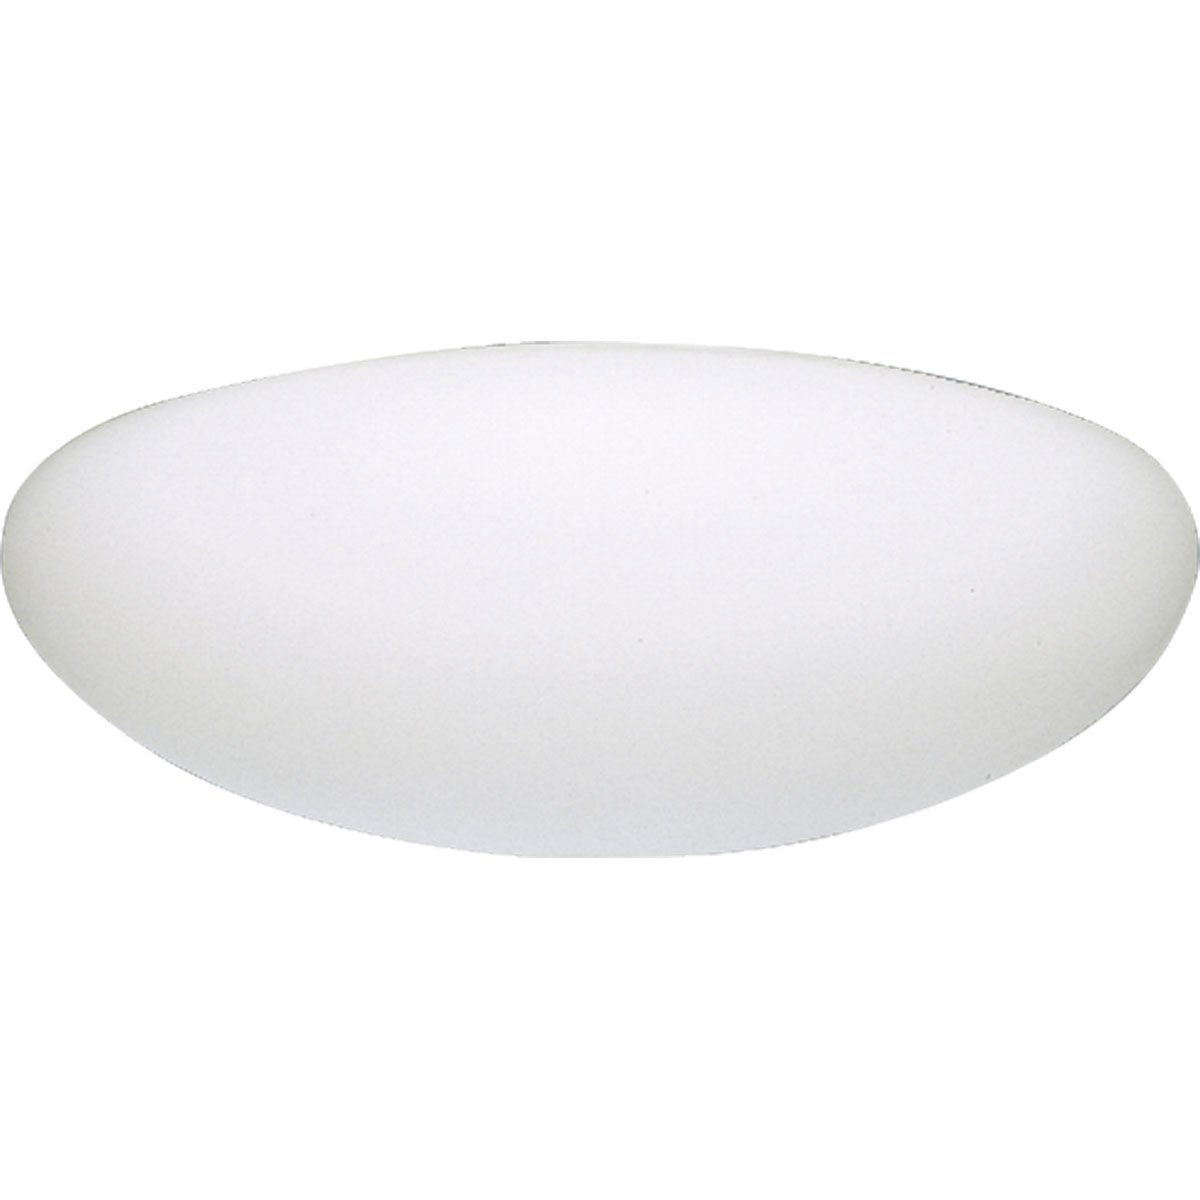 Progress Lighting P7310-60EB White Contoured Acrylic Clouds Float Off The Ceiling Regressed White Chassis Wall Or Ceiling Mount with Standard 120 Volt High Power Factor Electric Ballasts, White